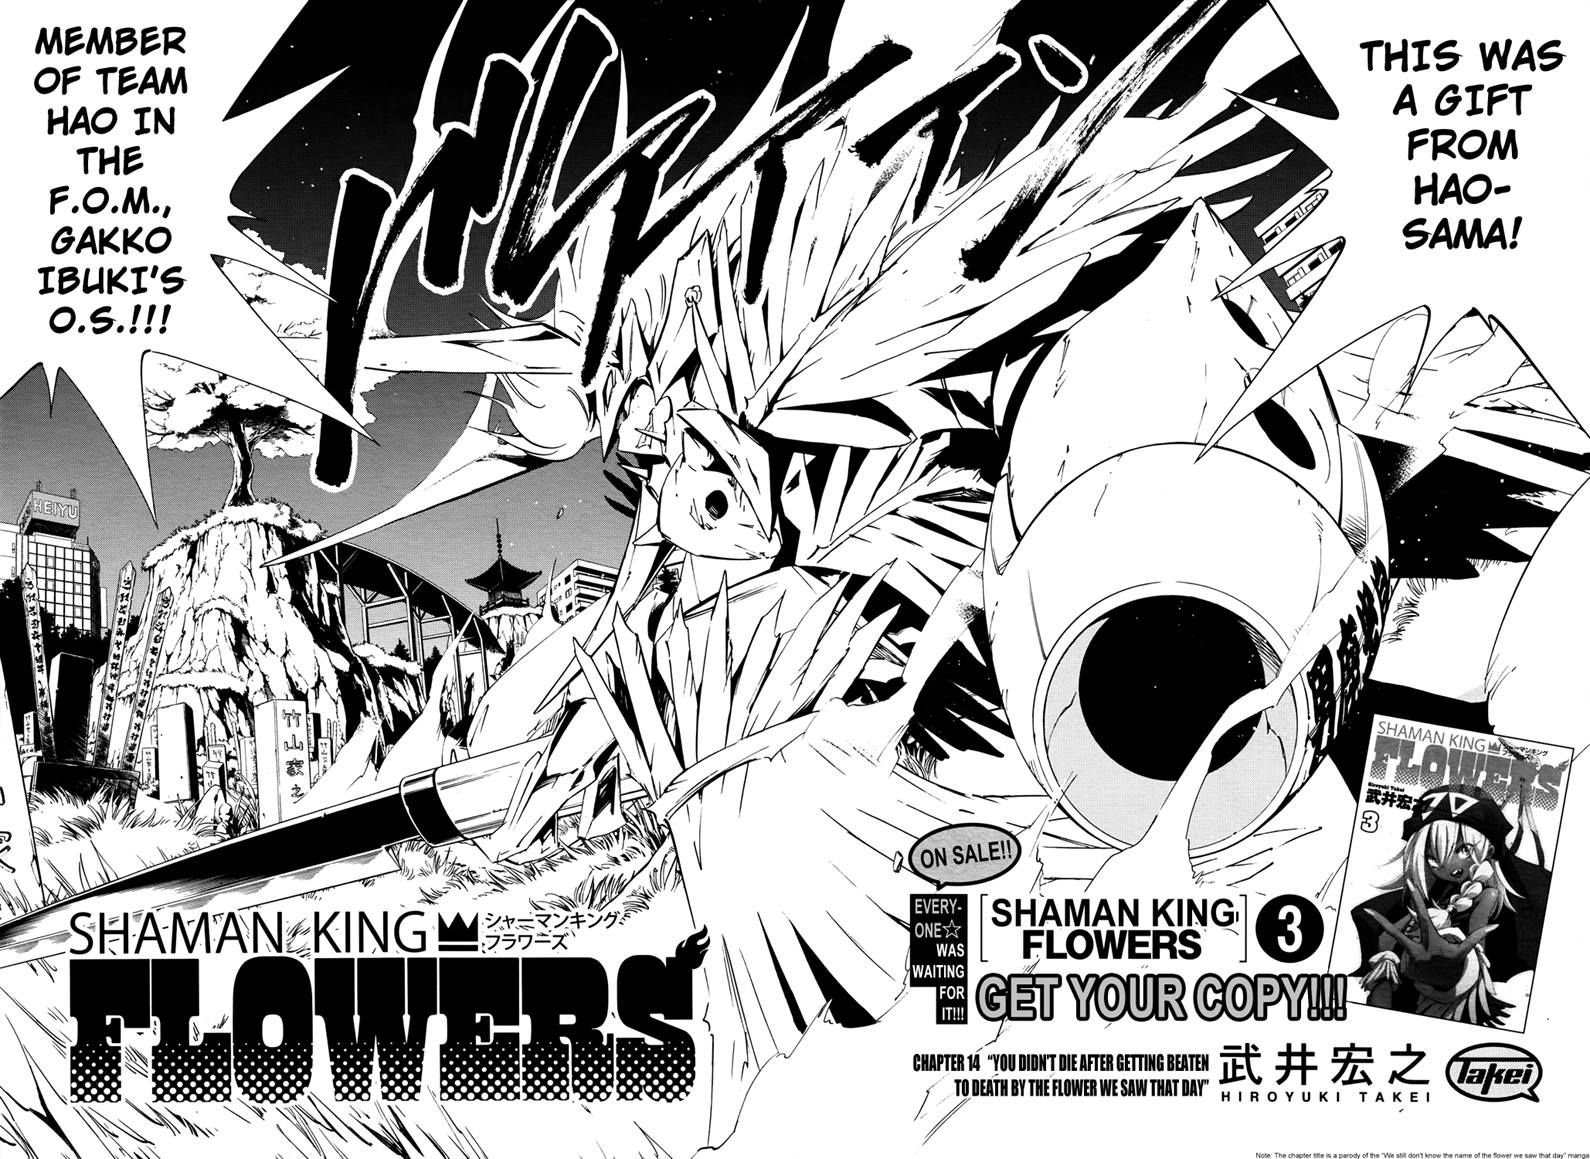 Shaman King Flowers 14 Page 2